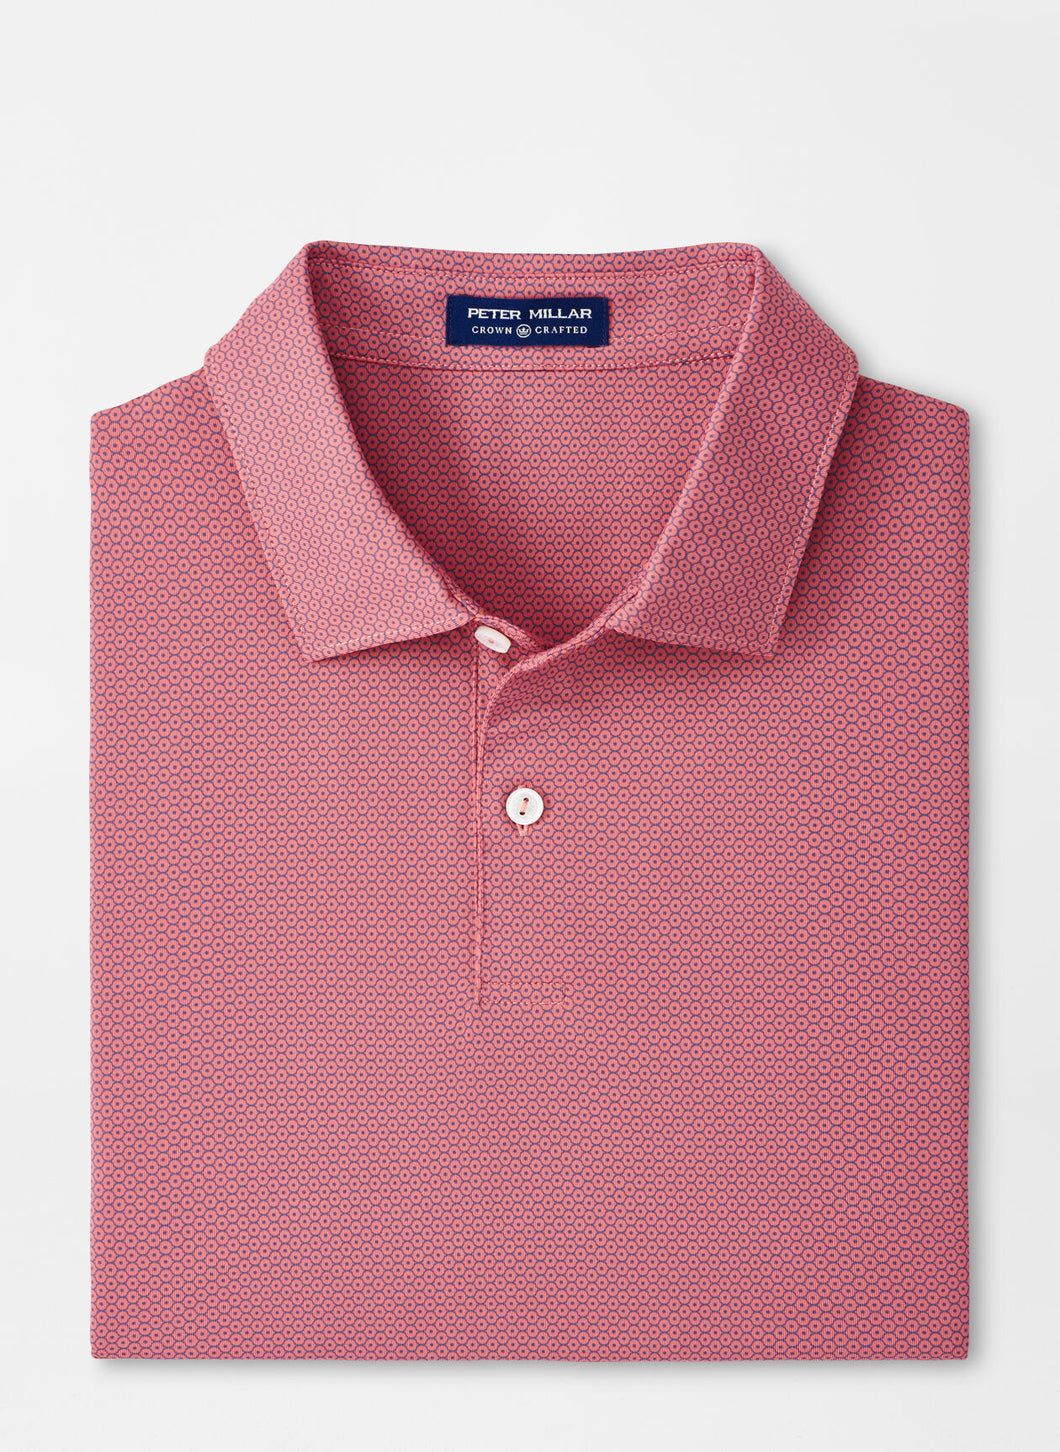 Peter Millar Dandy Performance Jersey Polo in French Tulip